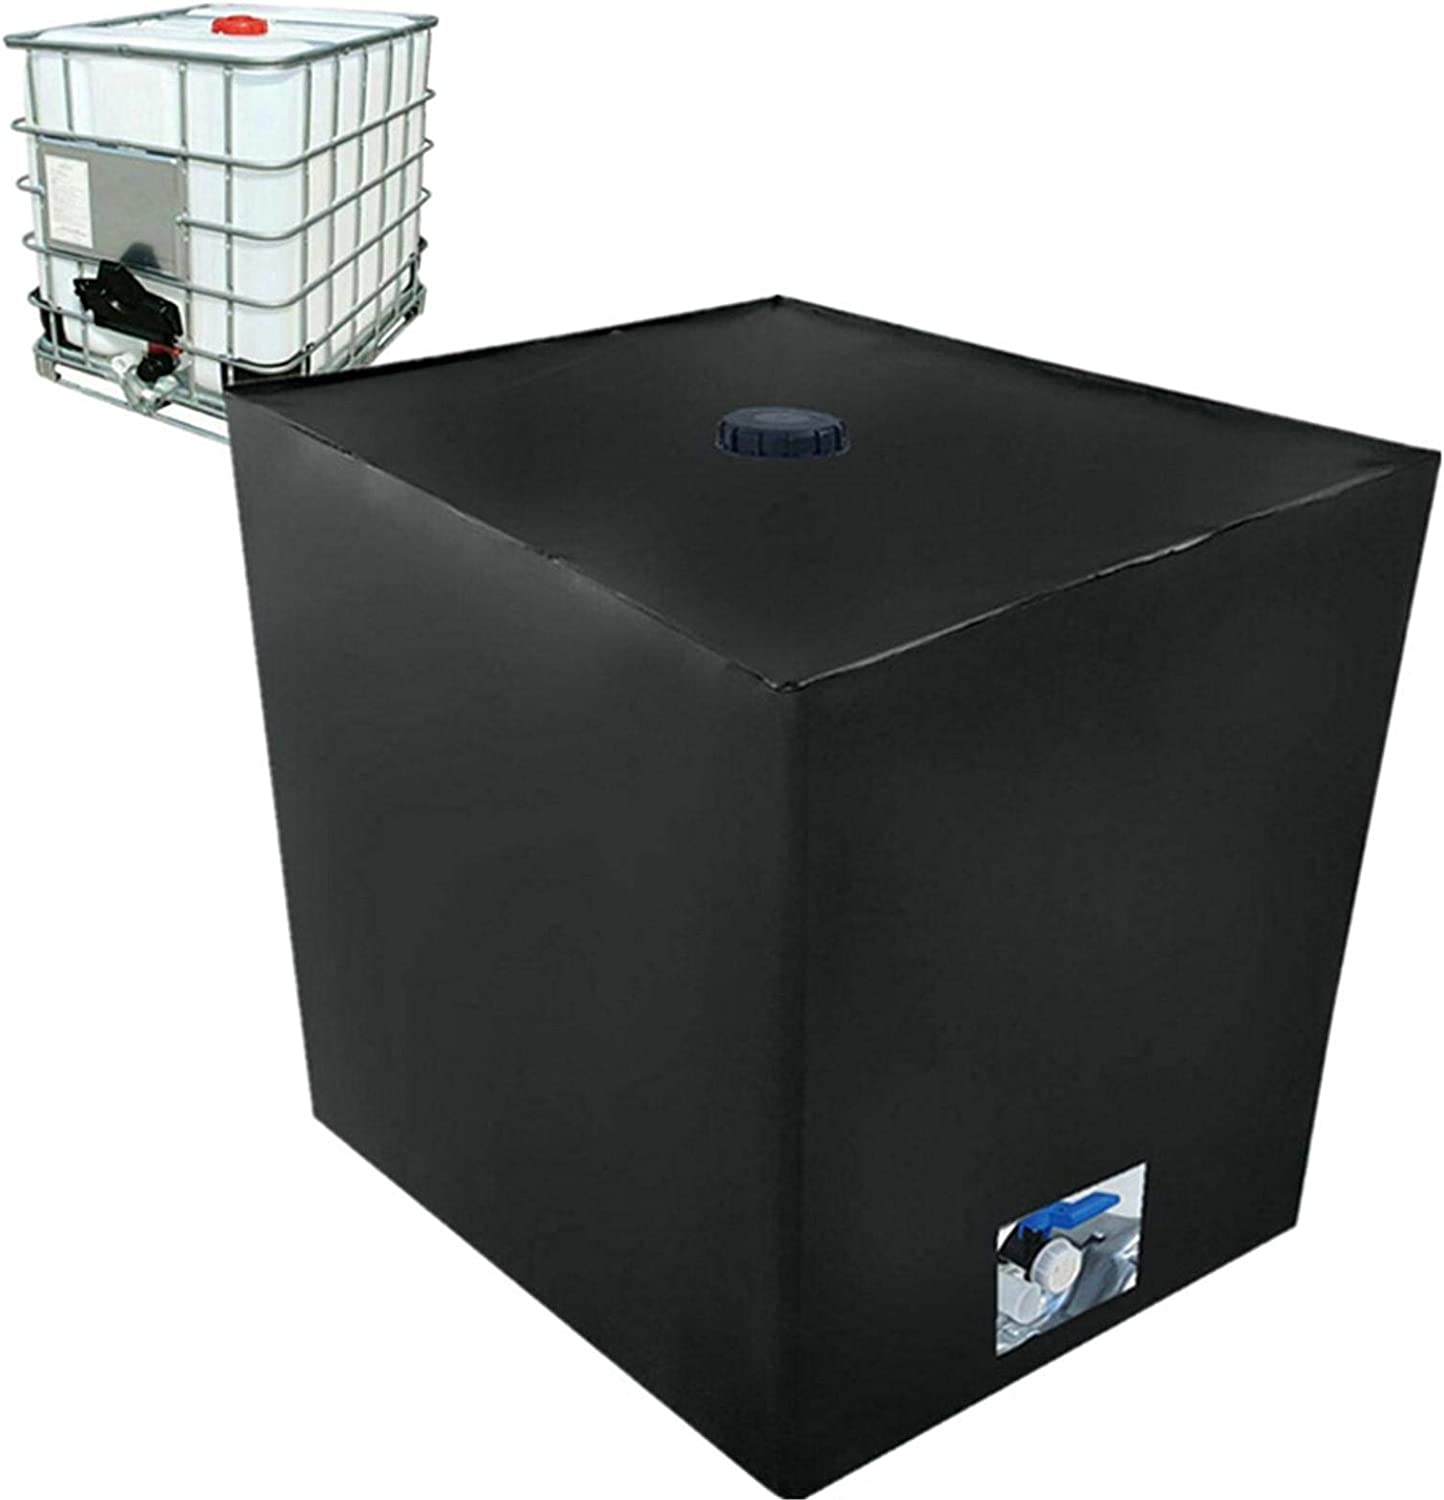 Protection Rain Water Tank Cover Case IBC Tank Cover Container Cover Protective Hood Waterproof//Dustproof//Anti-UV for Rain Water Tank 1000 L IBC Container